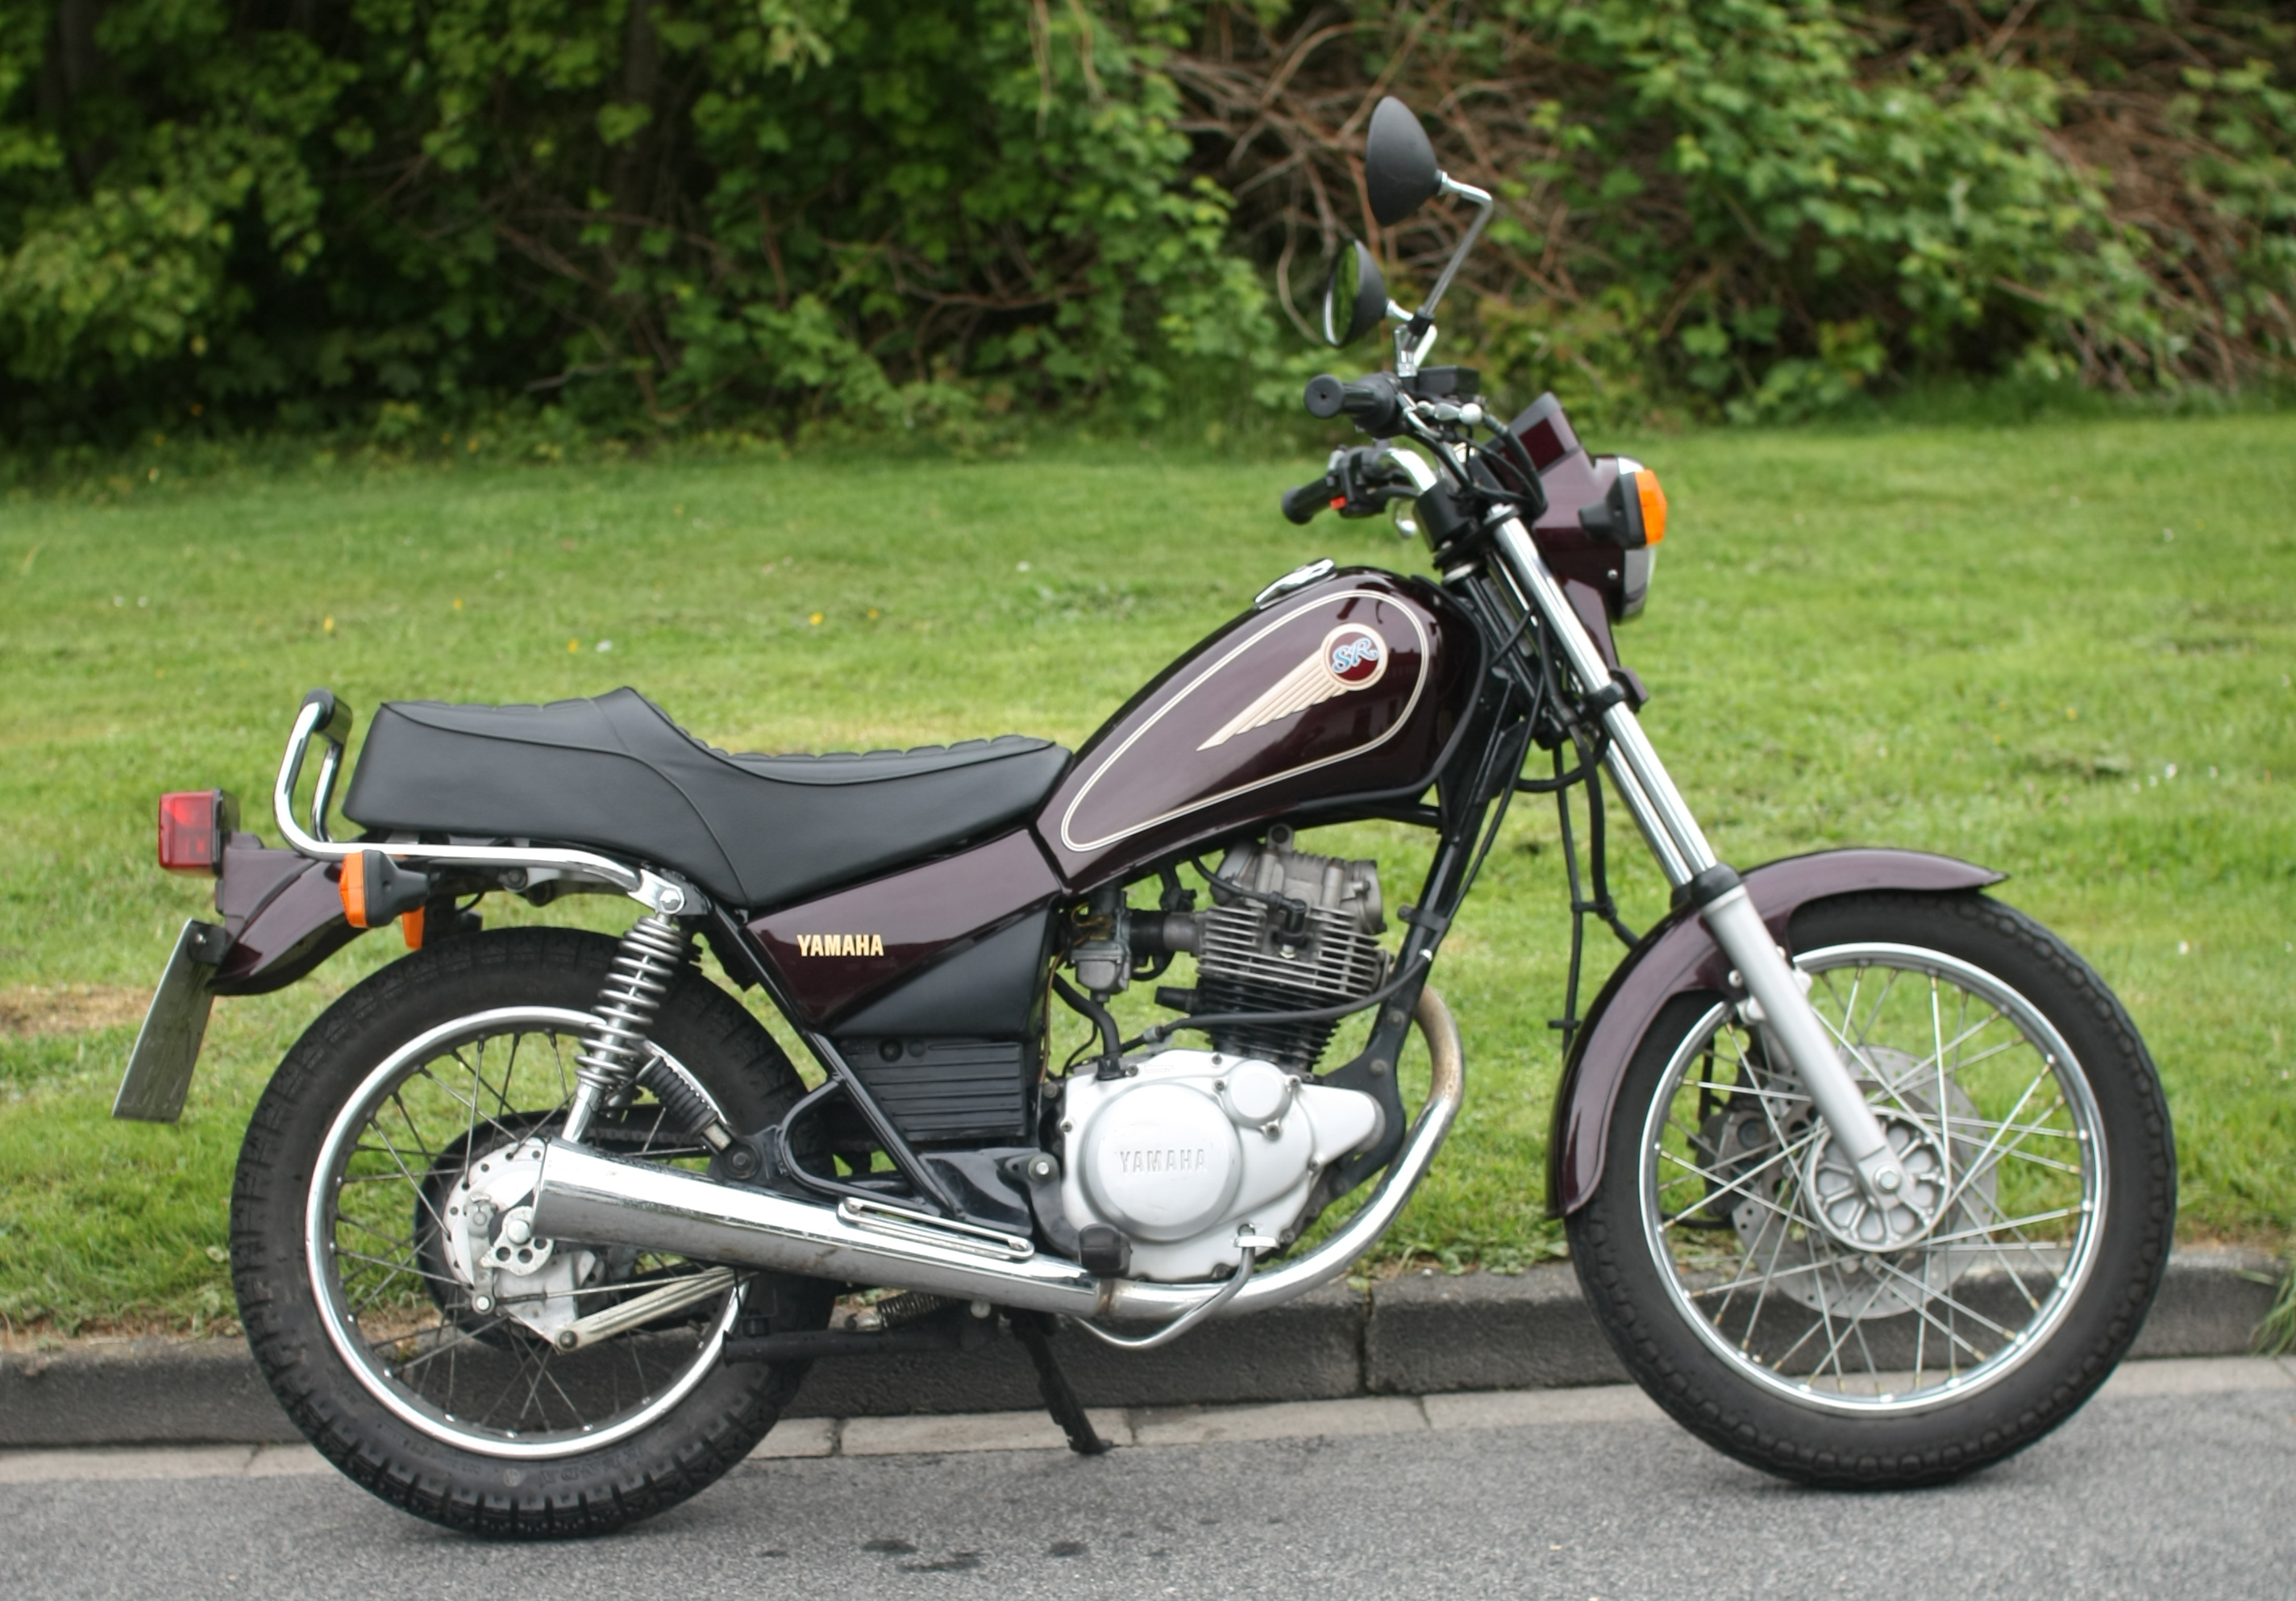 1988 yamaha sr 125 pics specs and information. Black Bedroom Furniture Sets. Home Design Ideas